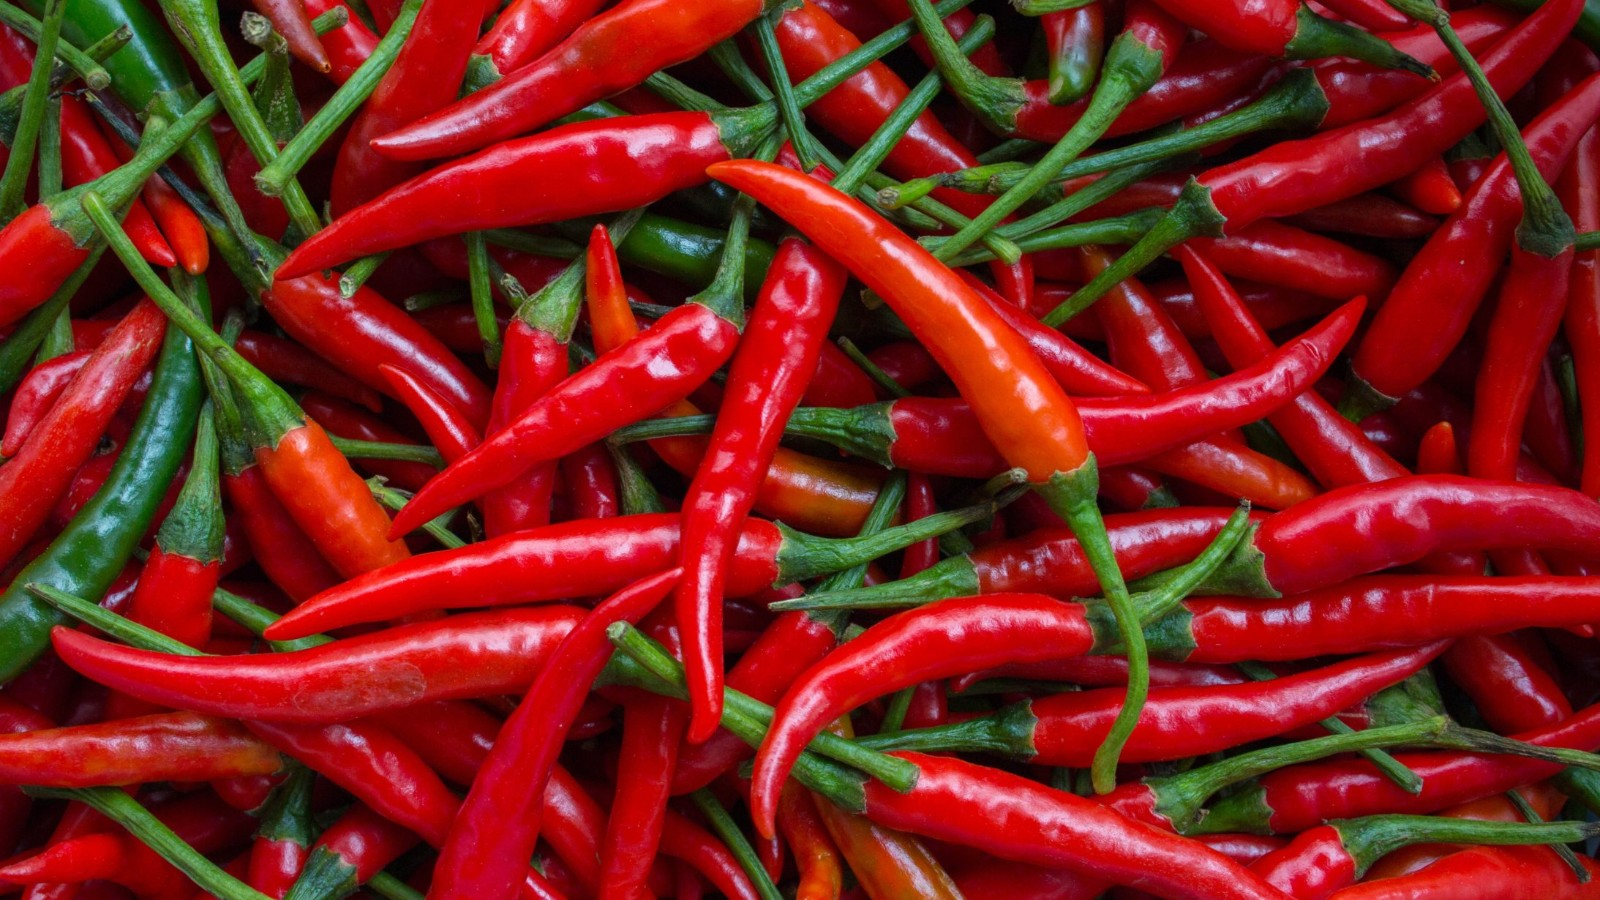 best places to get spicy food toronto